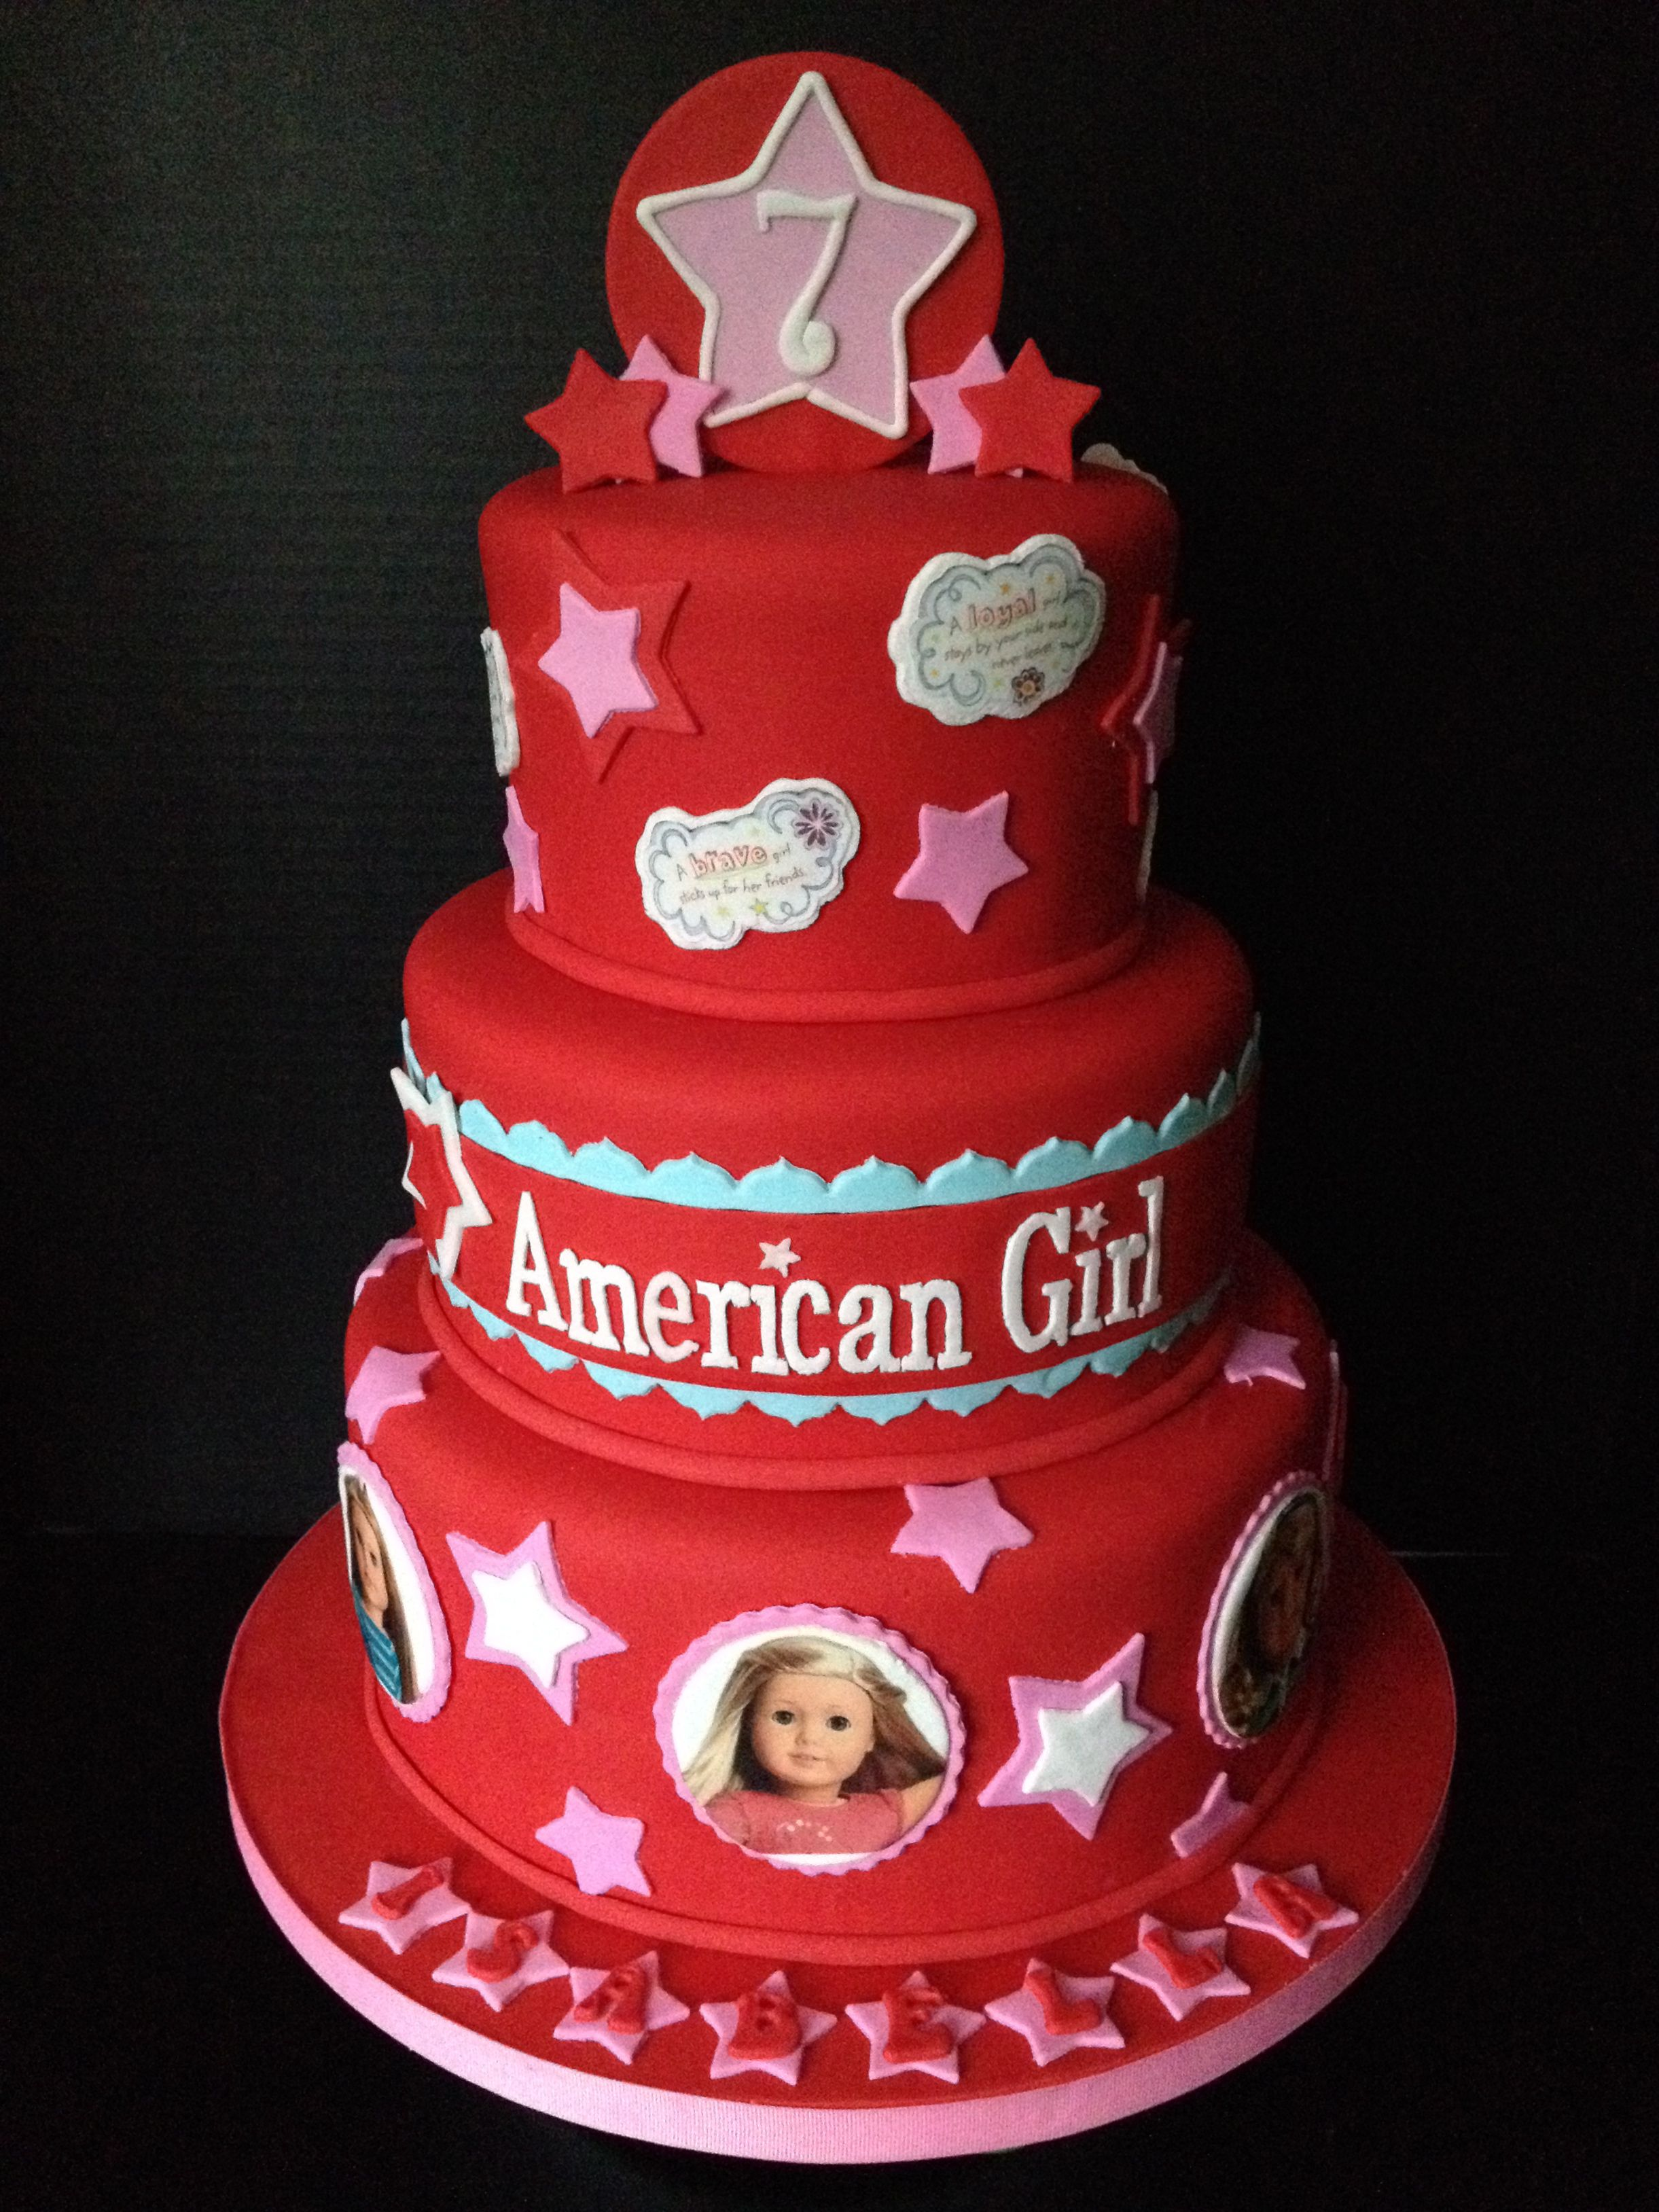 American Girl Doll Cake All Fondant With Edible Images American